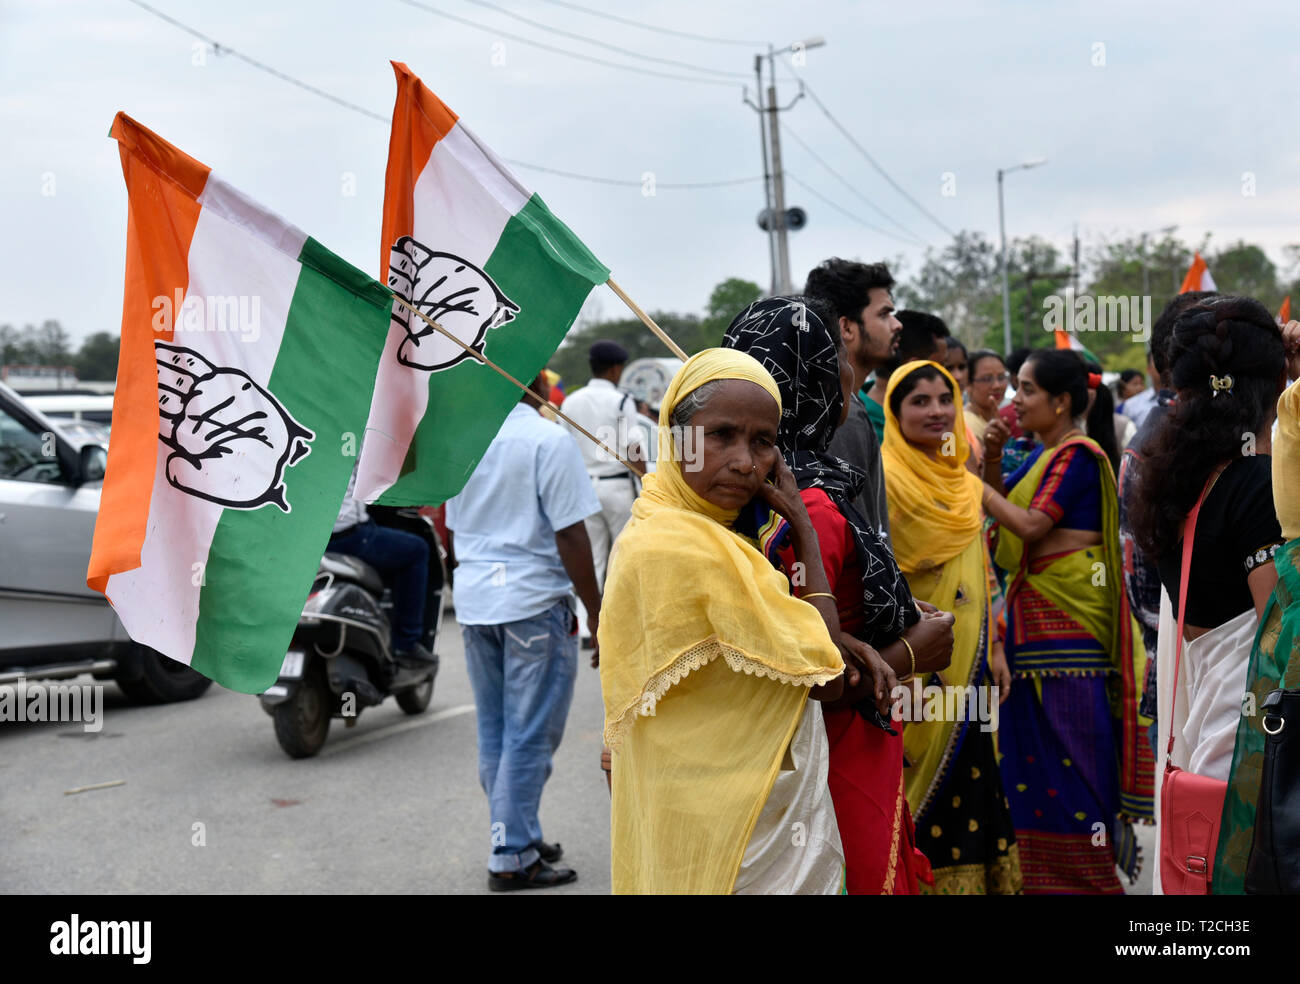 Guwahati, India. 1st Apr 2019. Congress supporters during the nomination filing procession of the party candidate from Guwahati constituency Bobeeta Sarma, in Guwahati, Monday, April 1, 2019.  Credit: David Talukdar/Alamy Live News - Stock Image